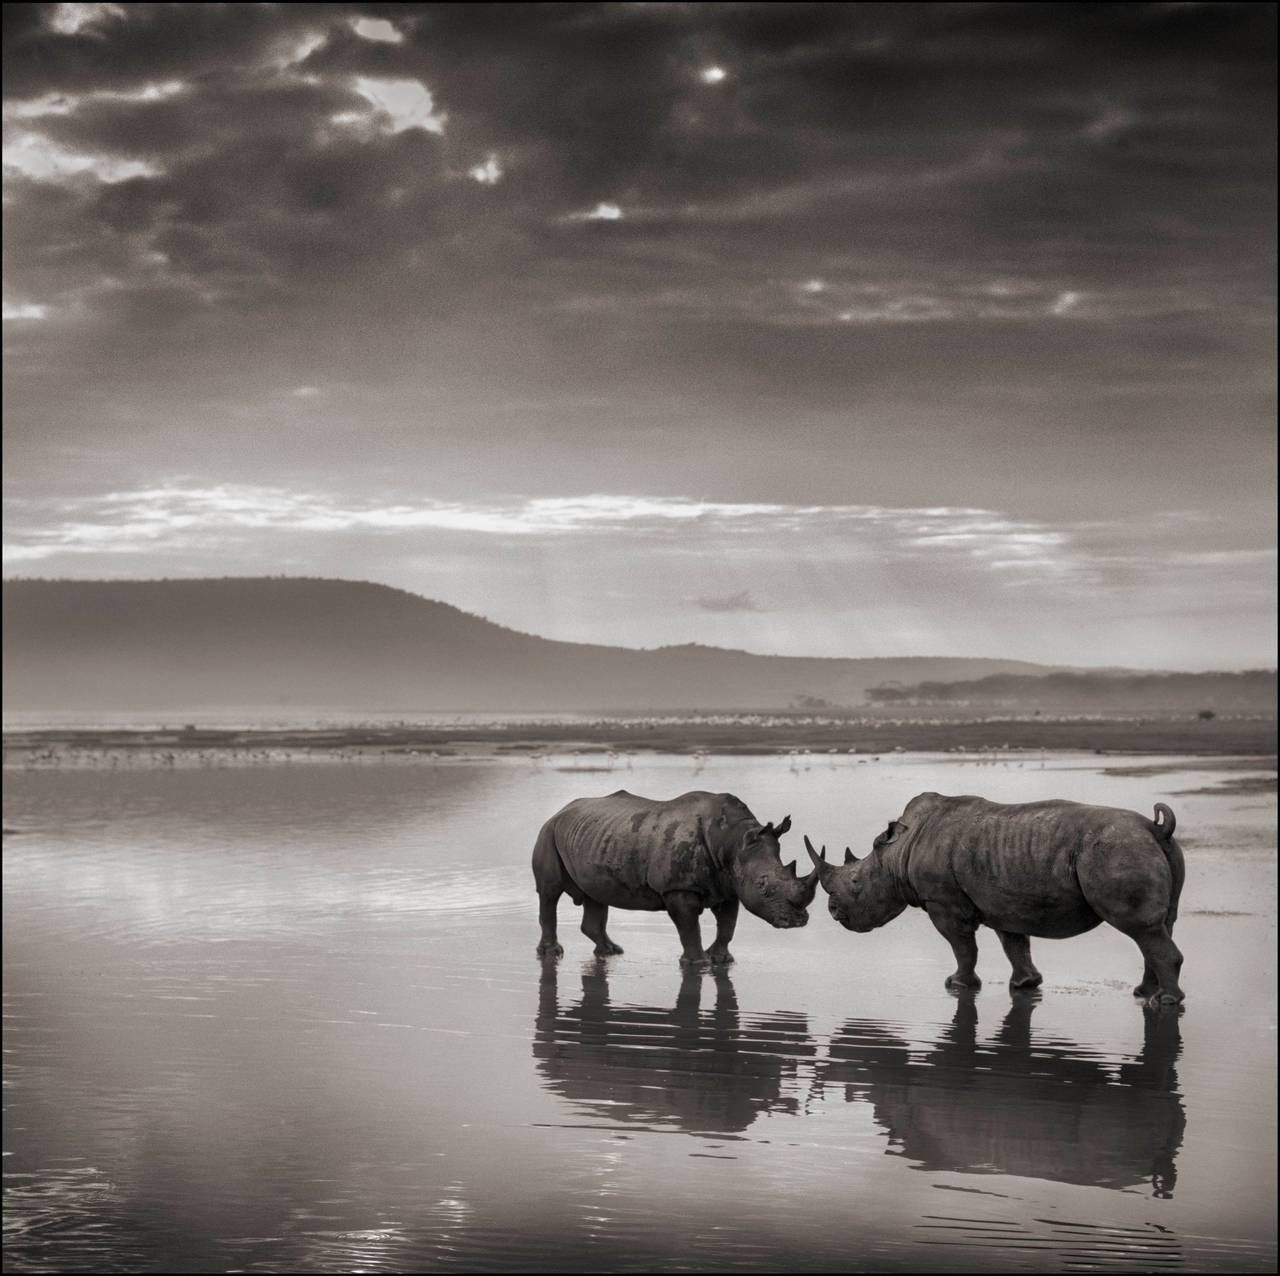 Rhinos in Lake, Nakuru